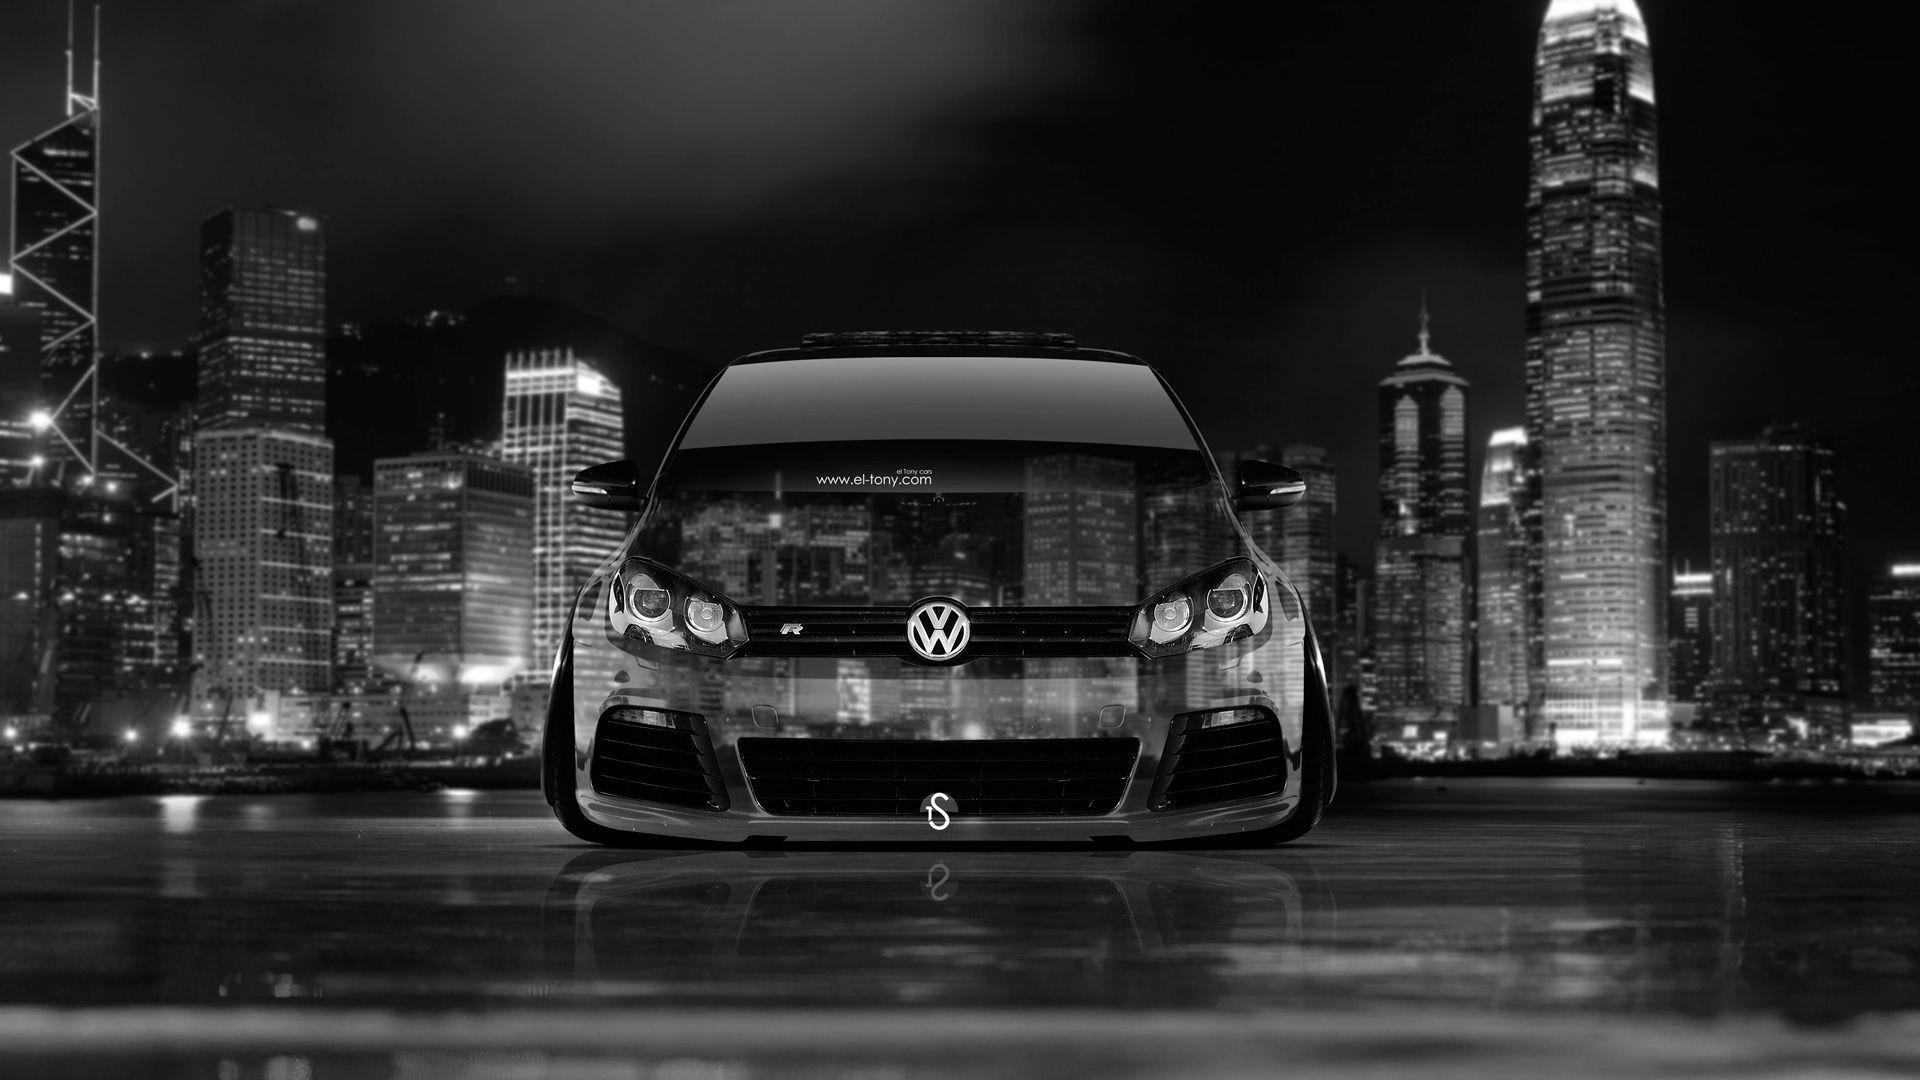 Volkswagen Golf R Car Wallpapers reflect your style in rich fashion